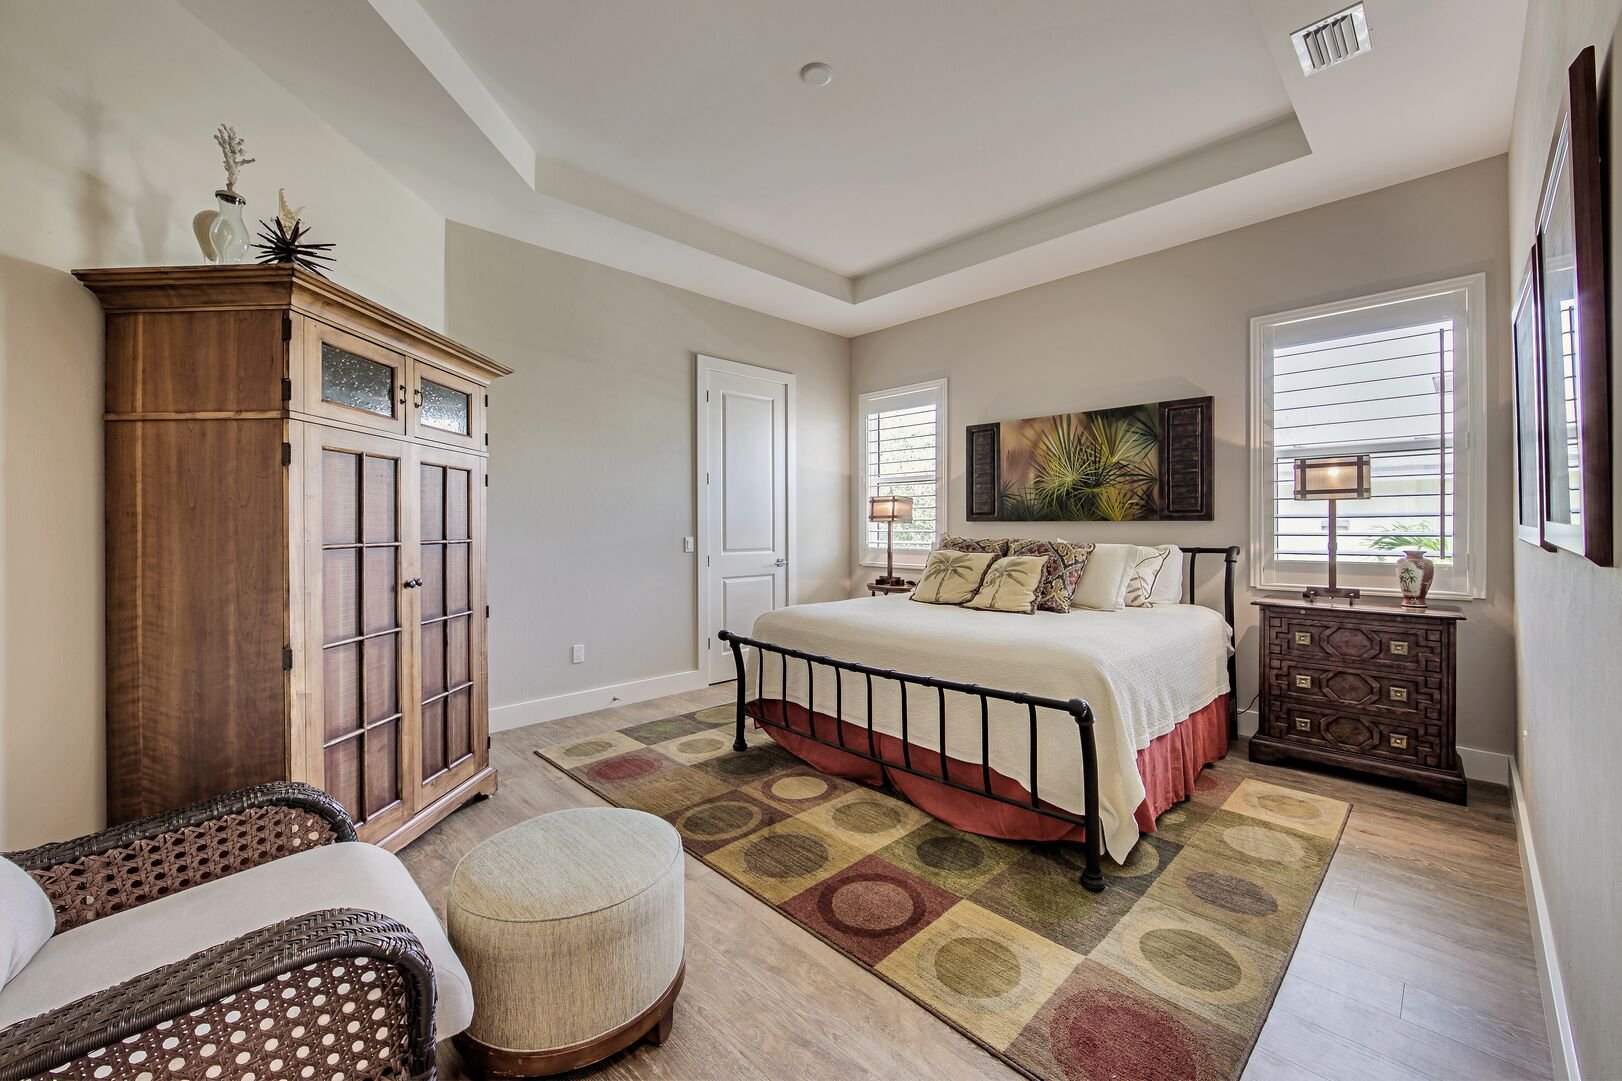 Bedroom area with nearby dresser